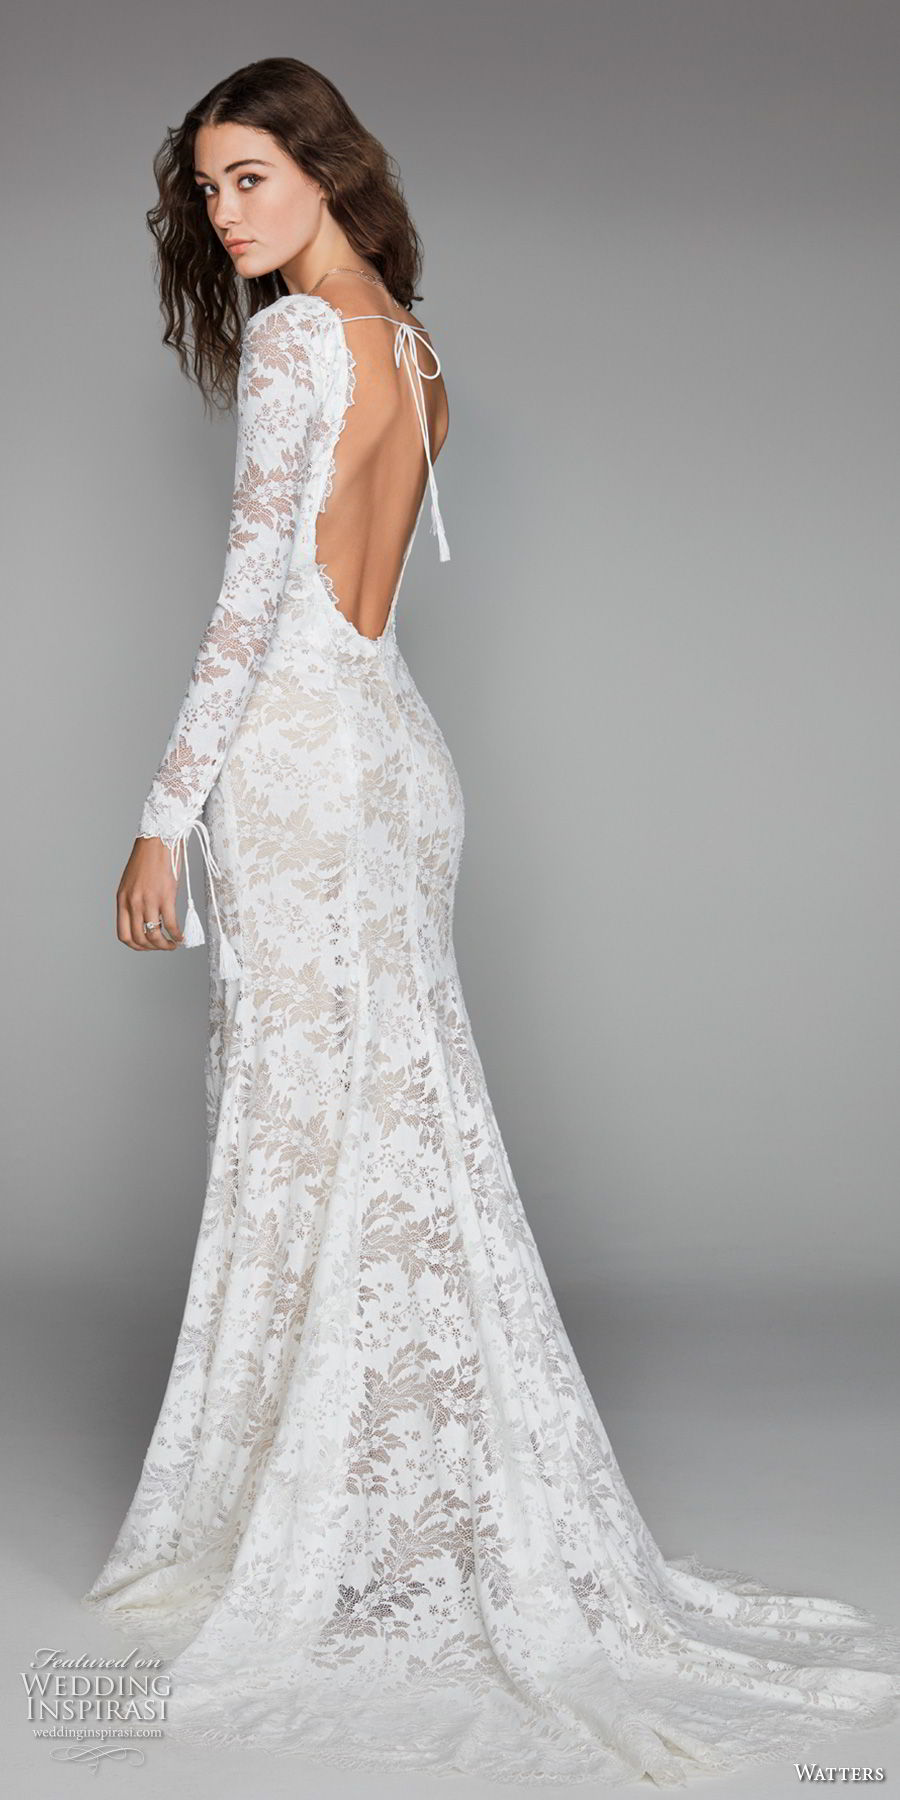 willow by watters spring 2018 long sleeves v neck full embellishment elegant fit and flare wedding dress low scoop back sweep train (4) bv